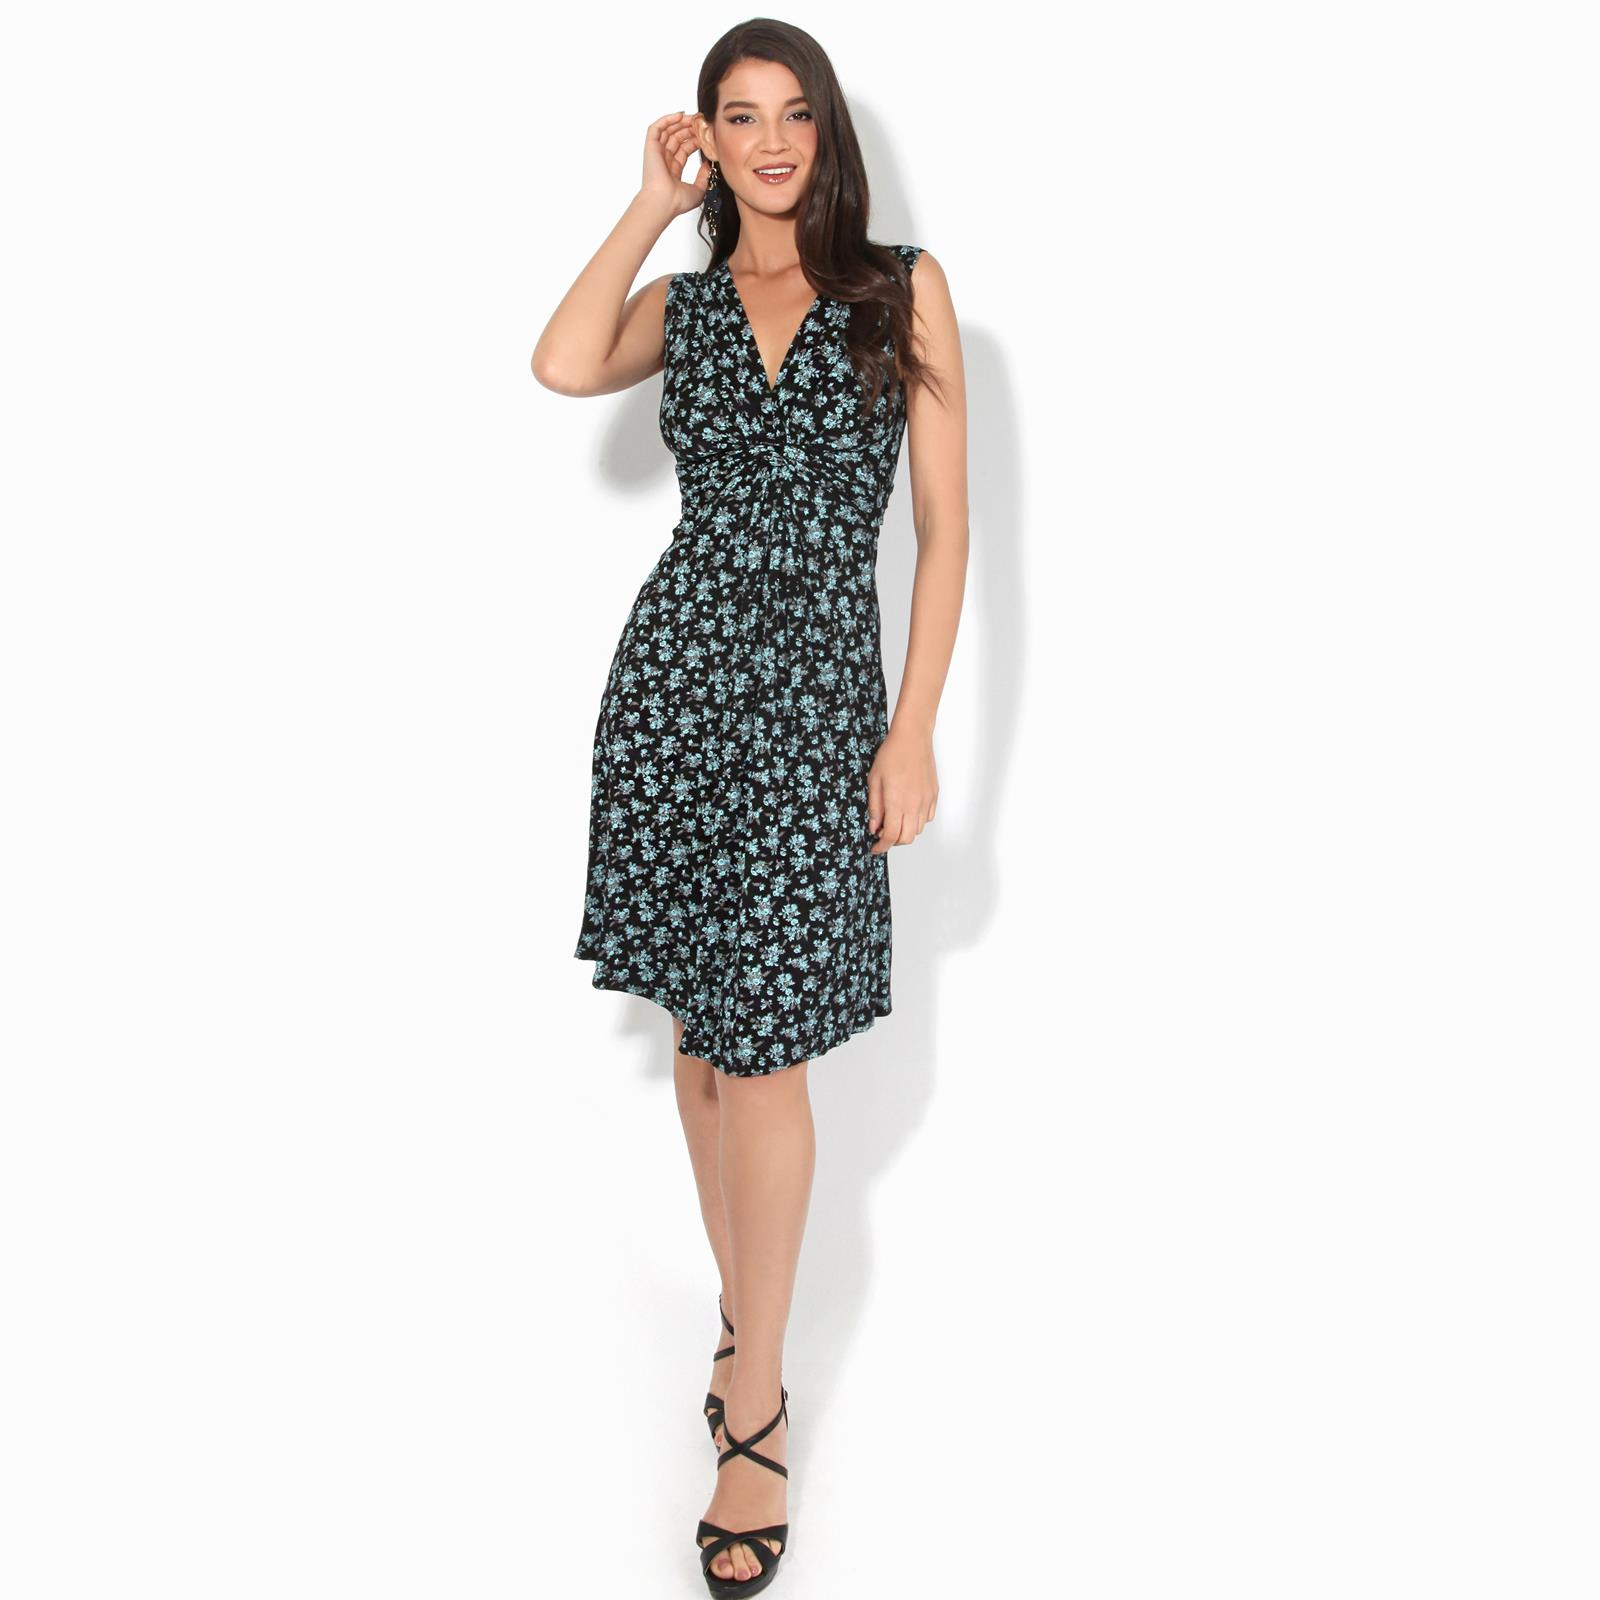 Women-Ladies-Floral-Midi-Dress-Pattern-Sleeveless-V-Neck-Stretch-Casual-Sundress thumbnail 3